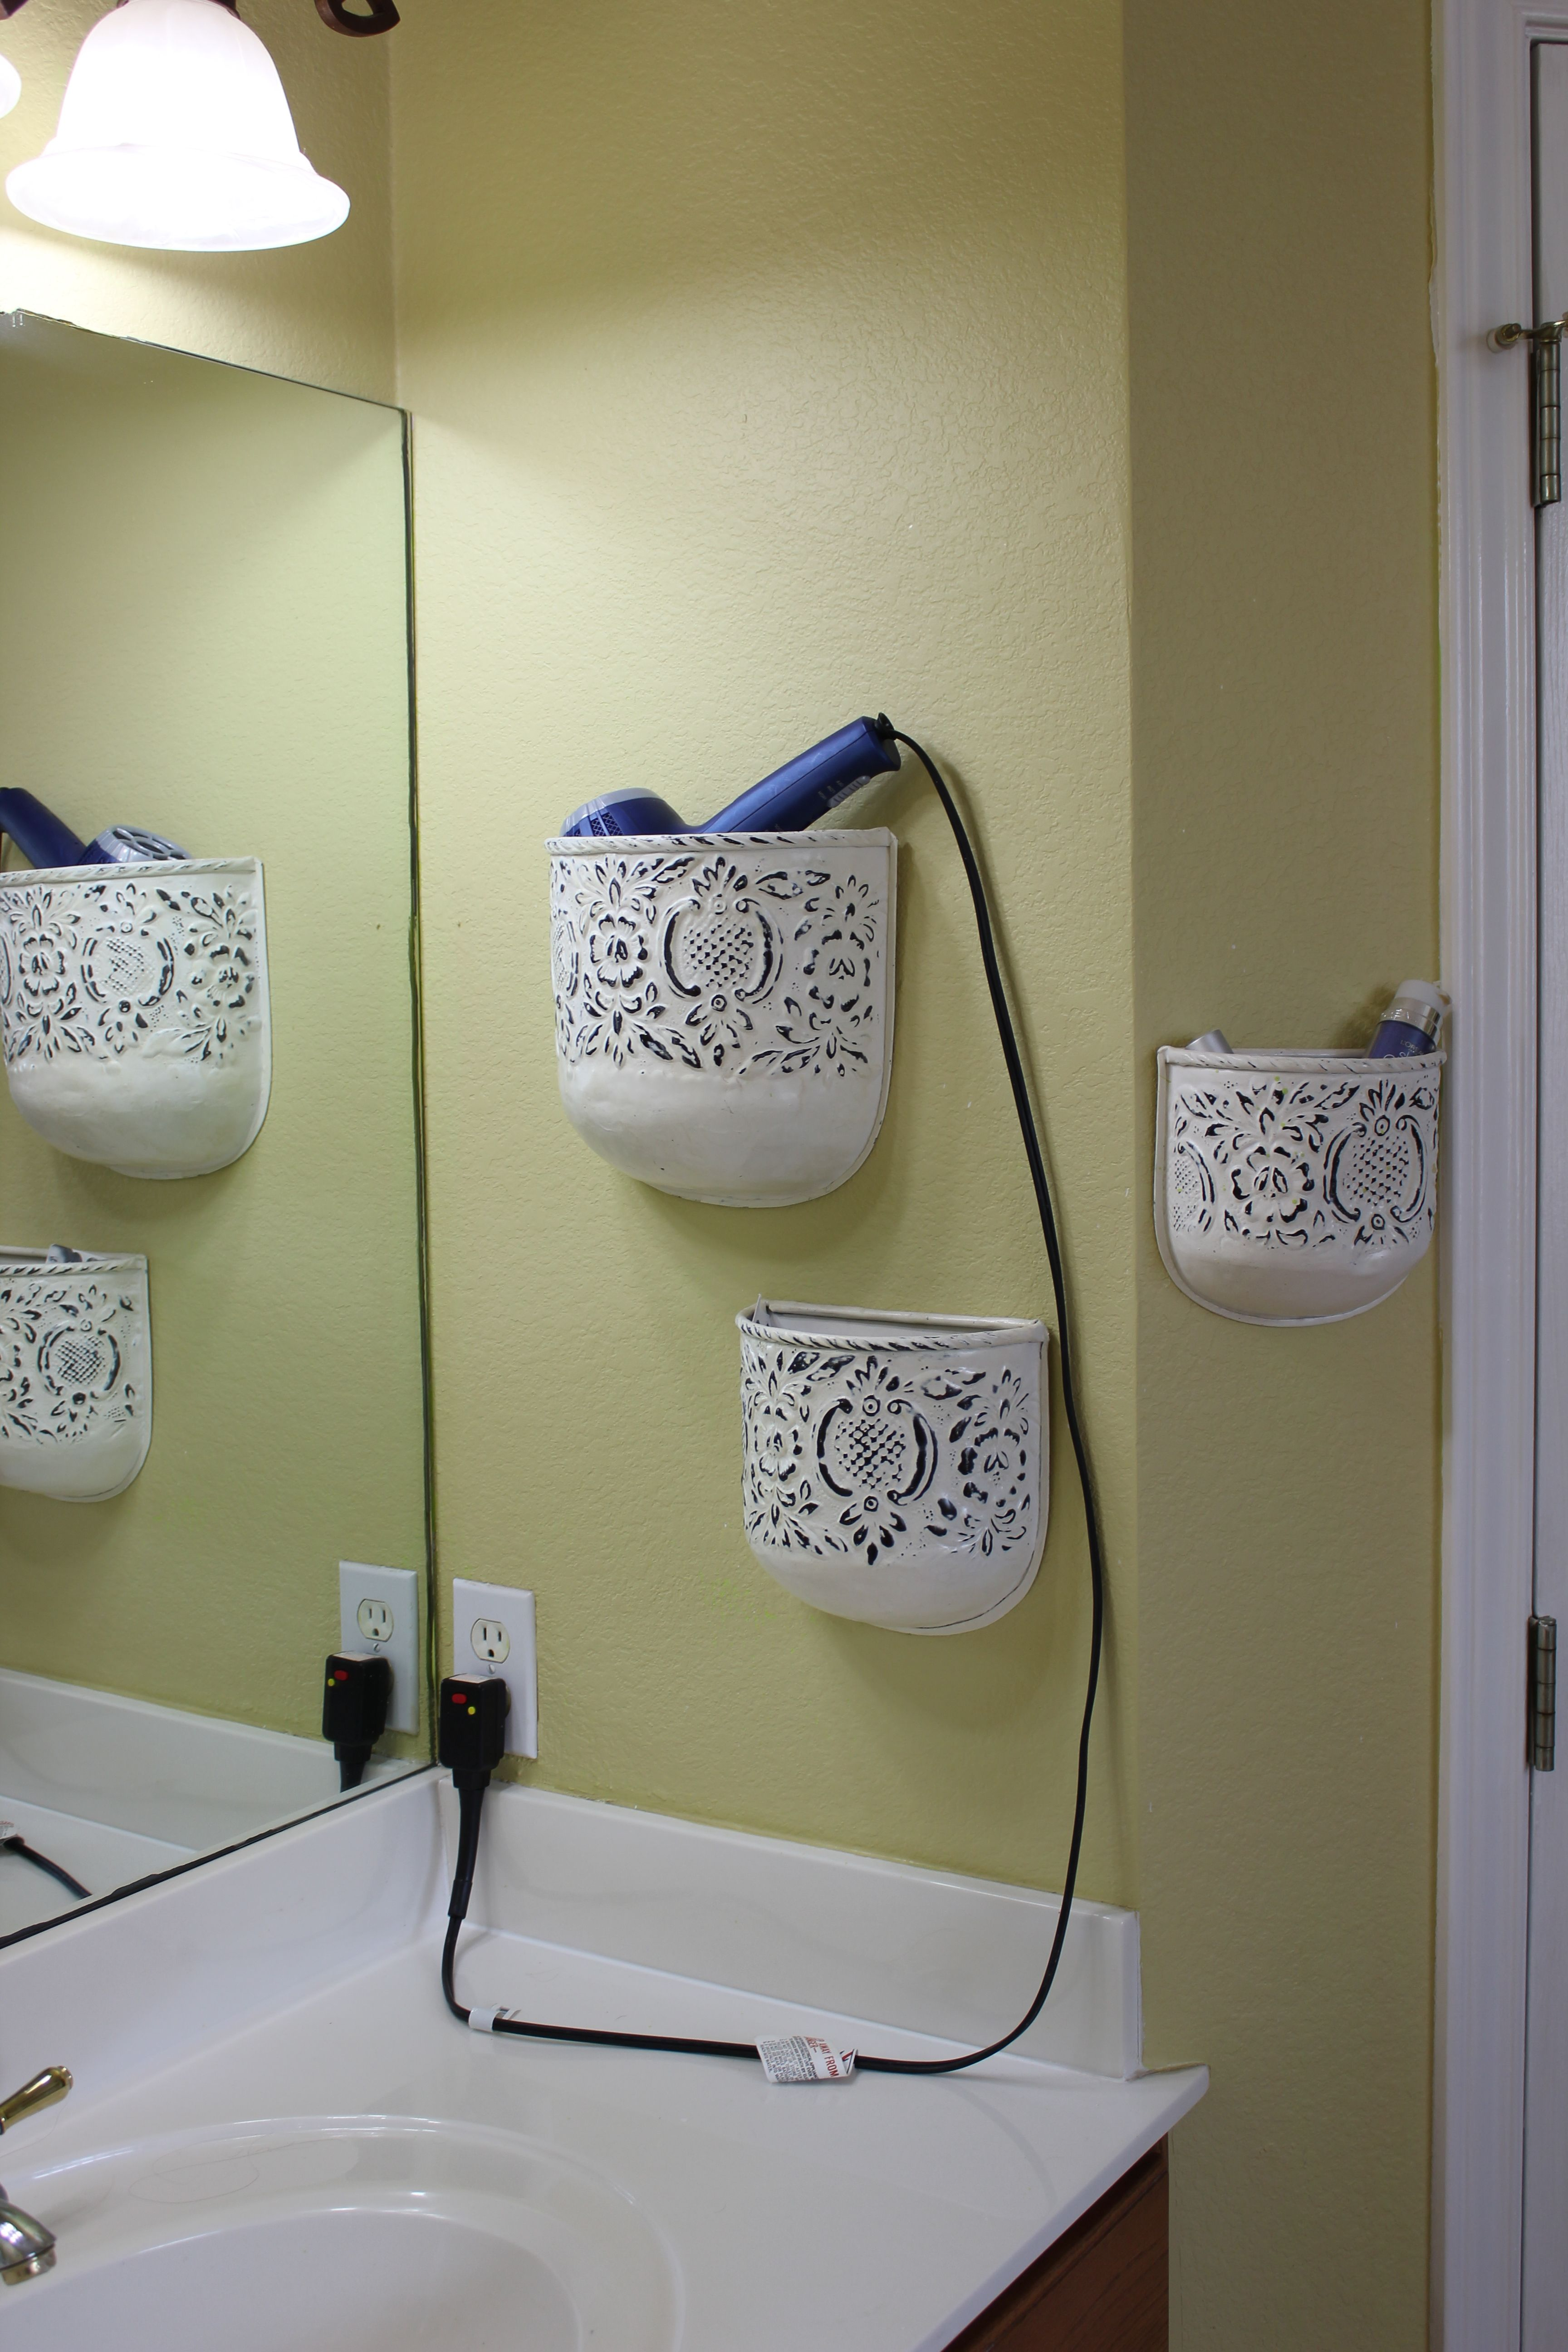 Discussion on this topic: 12ingenious tricks tomake your bathroom the most , 12ingenious-tricks-tomake-your-bathroom-the-most/